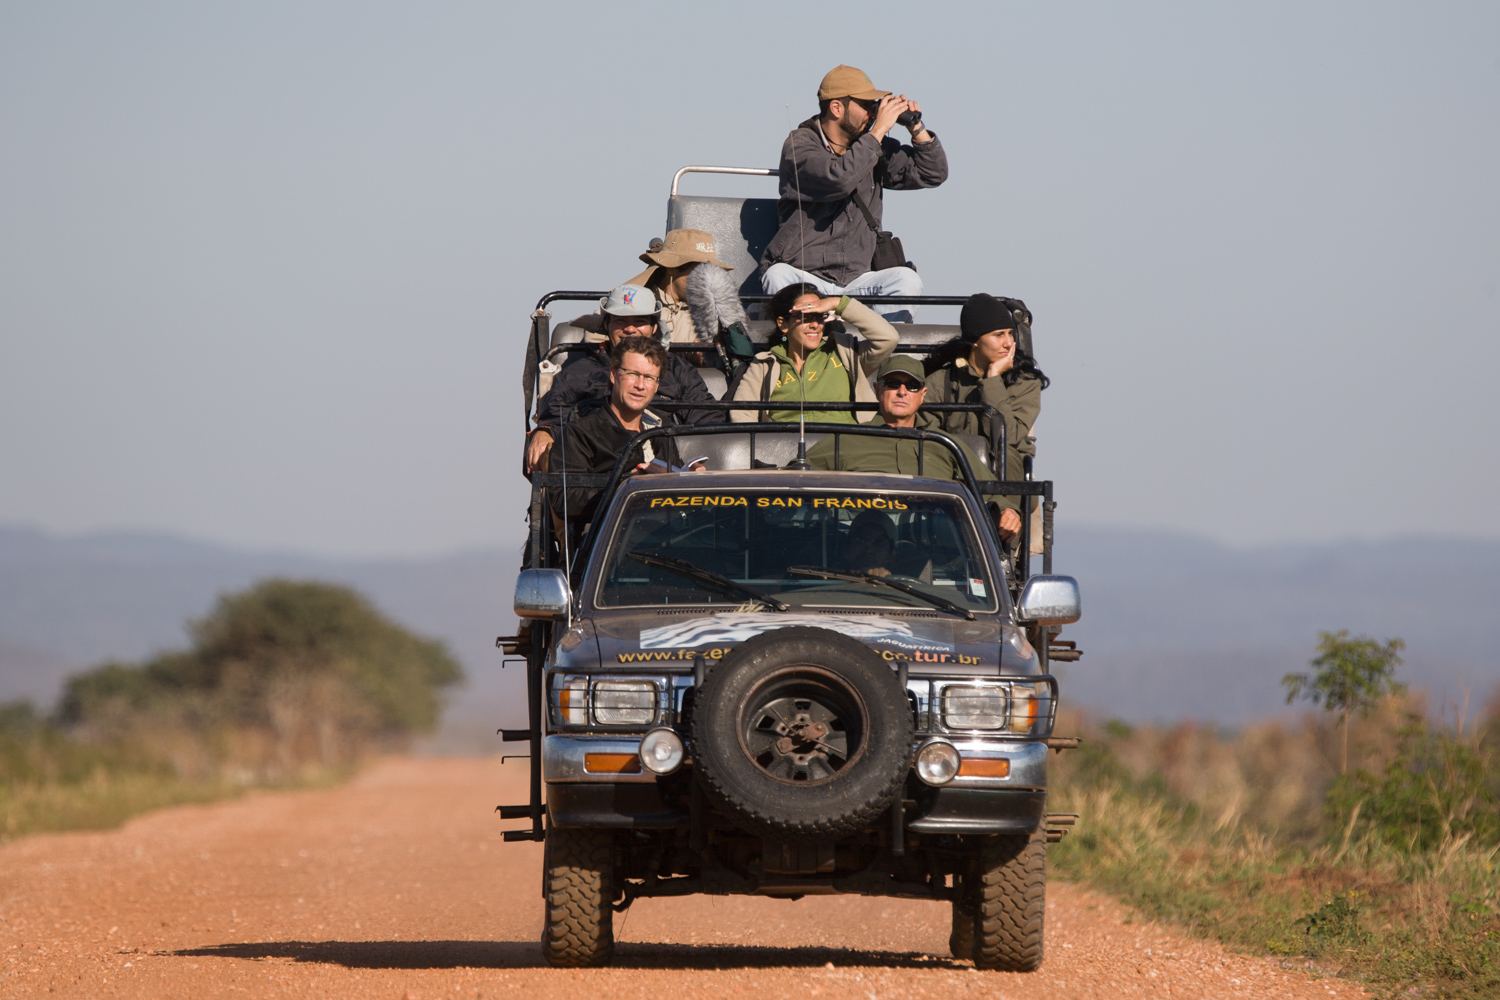 Watch and Learn: John Greengo on the Road with Art Wolfe